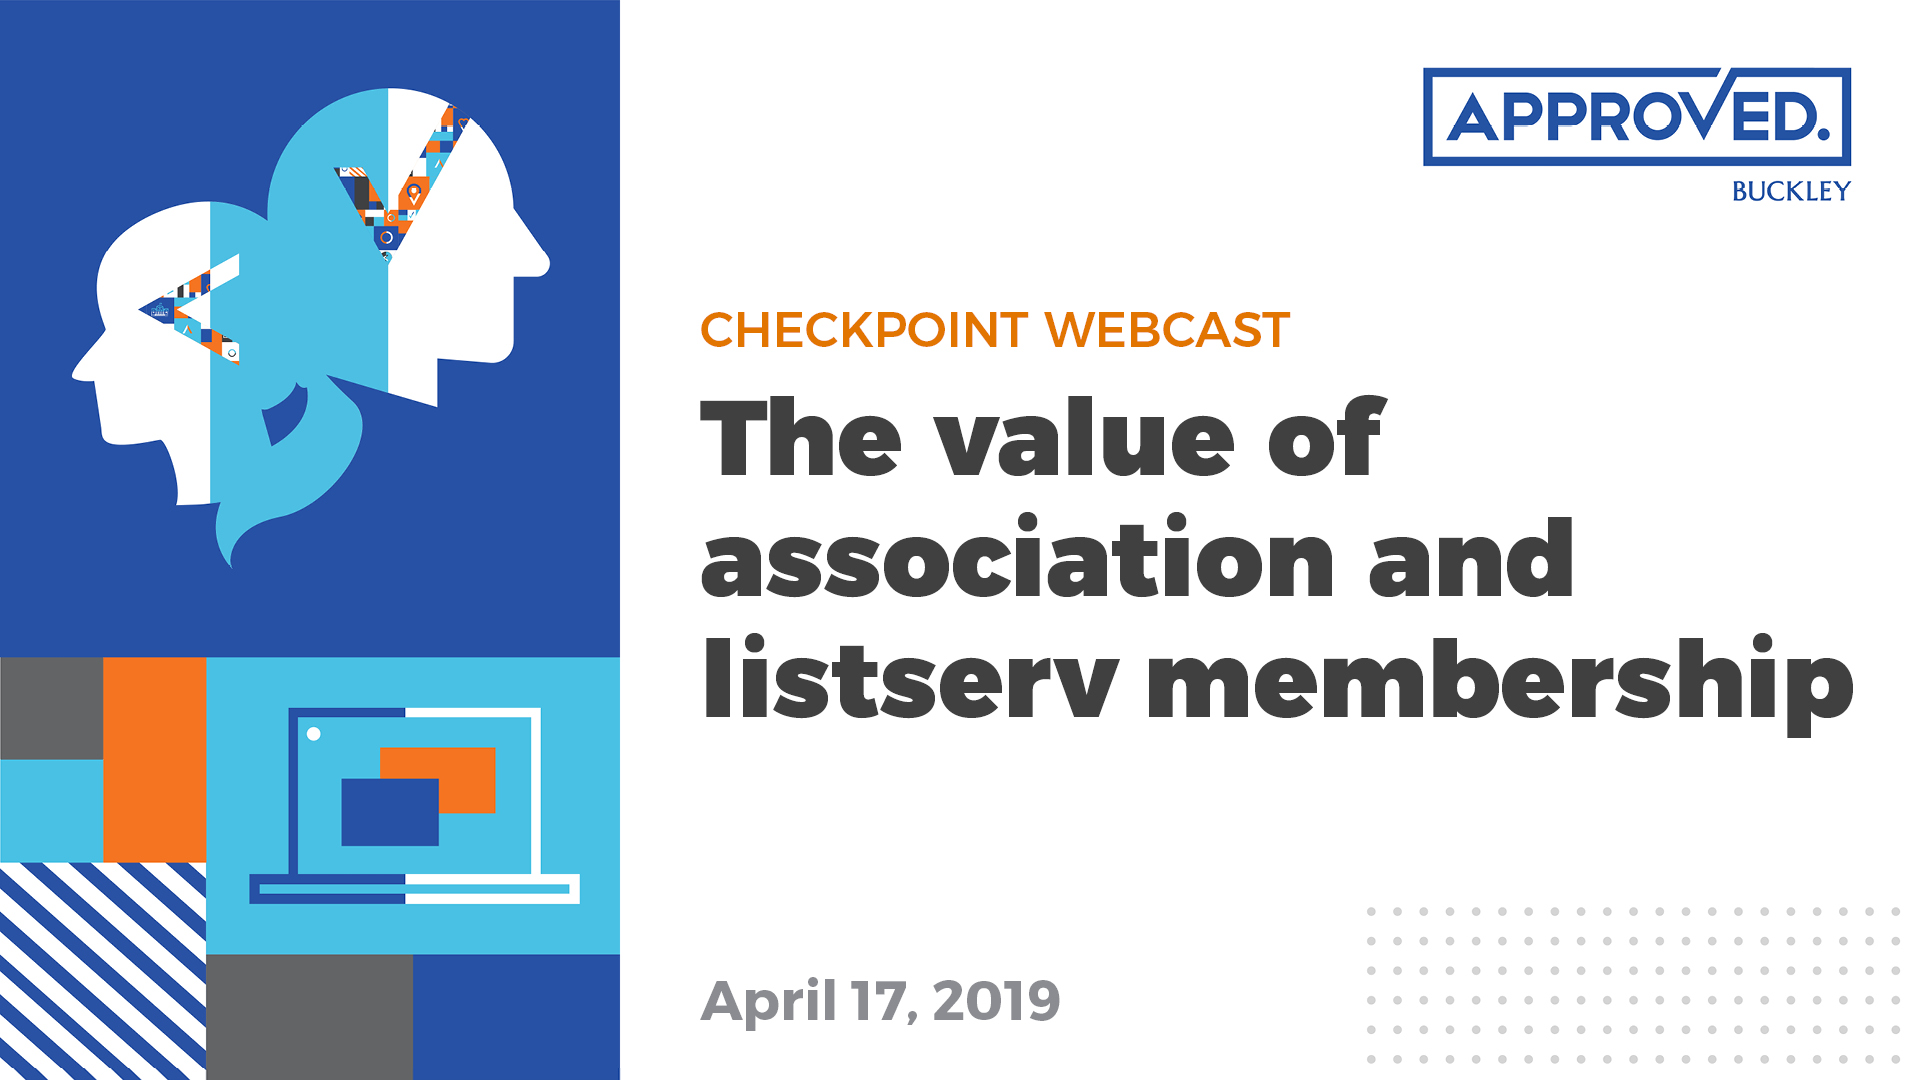 APPROVED Checkpoint Webcast | The value of association and listserv membership